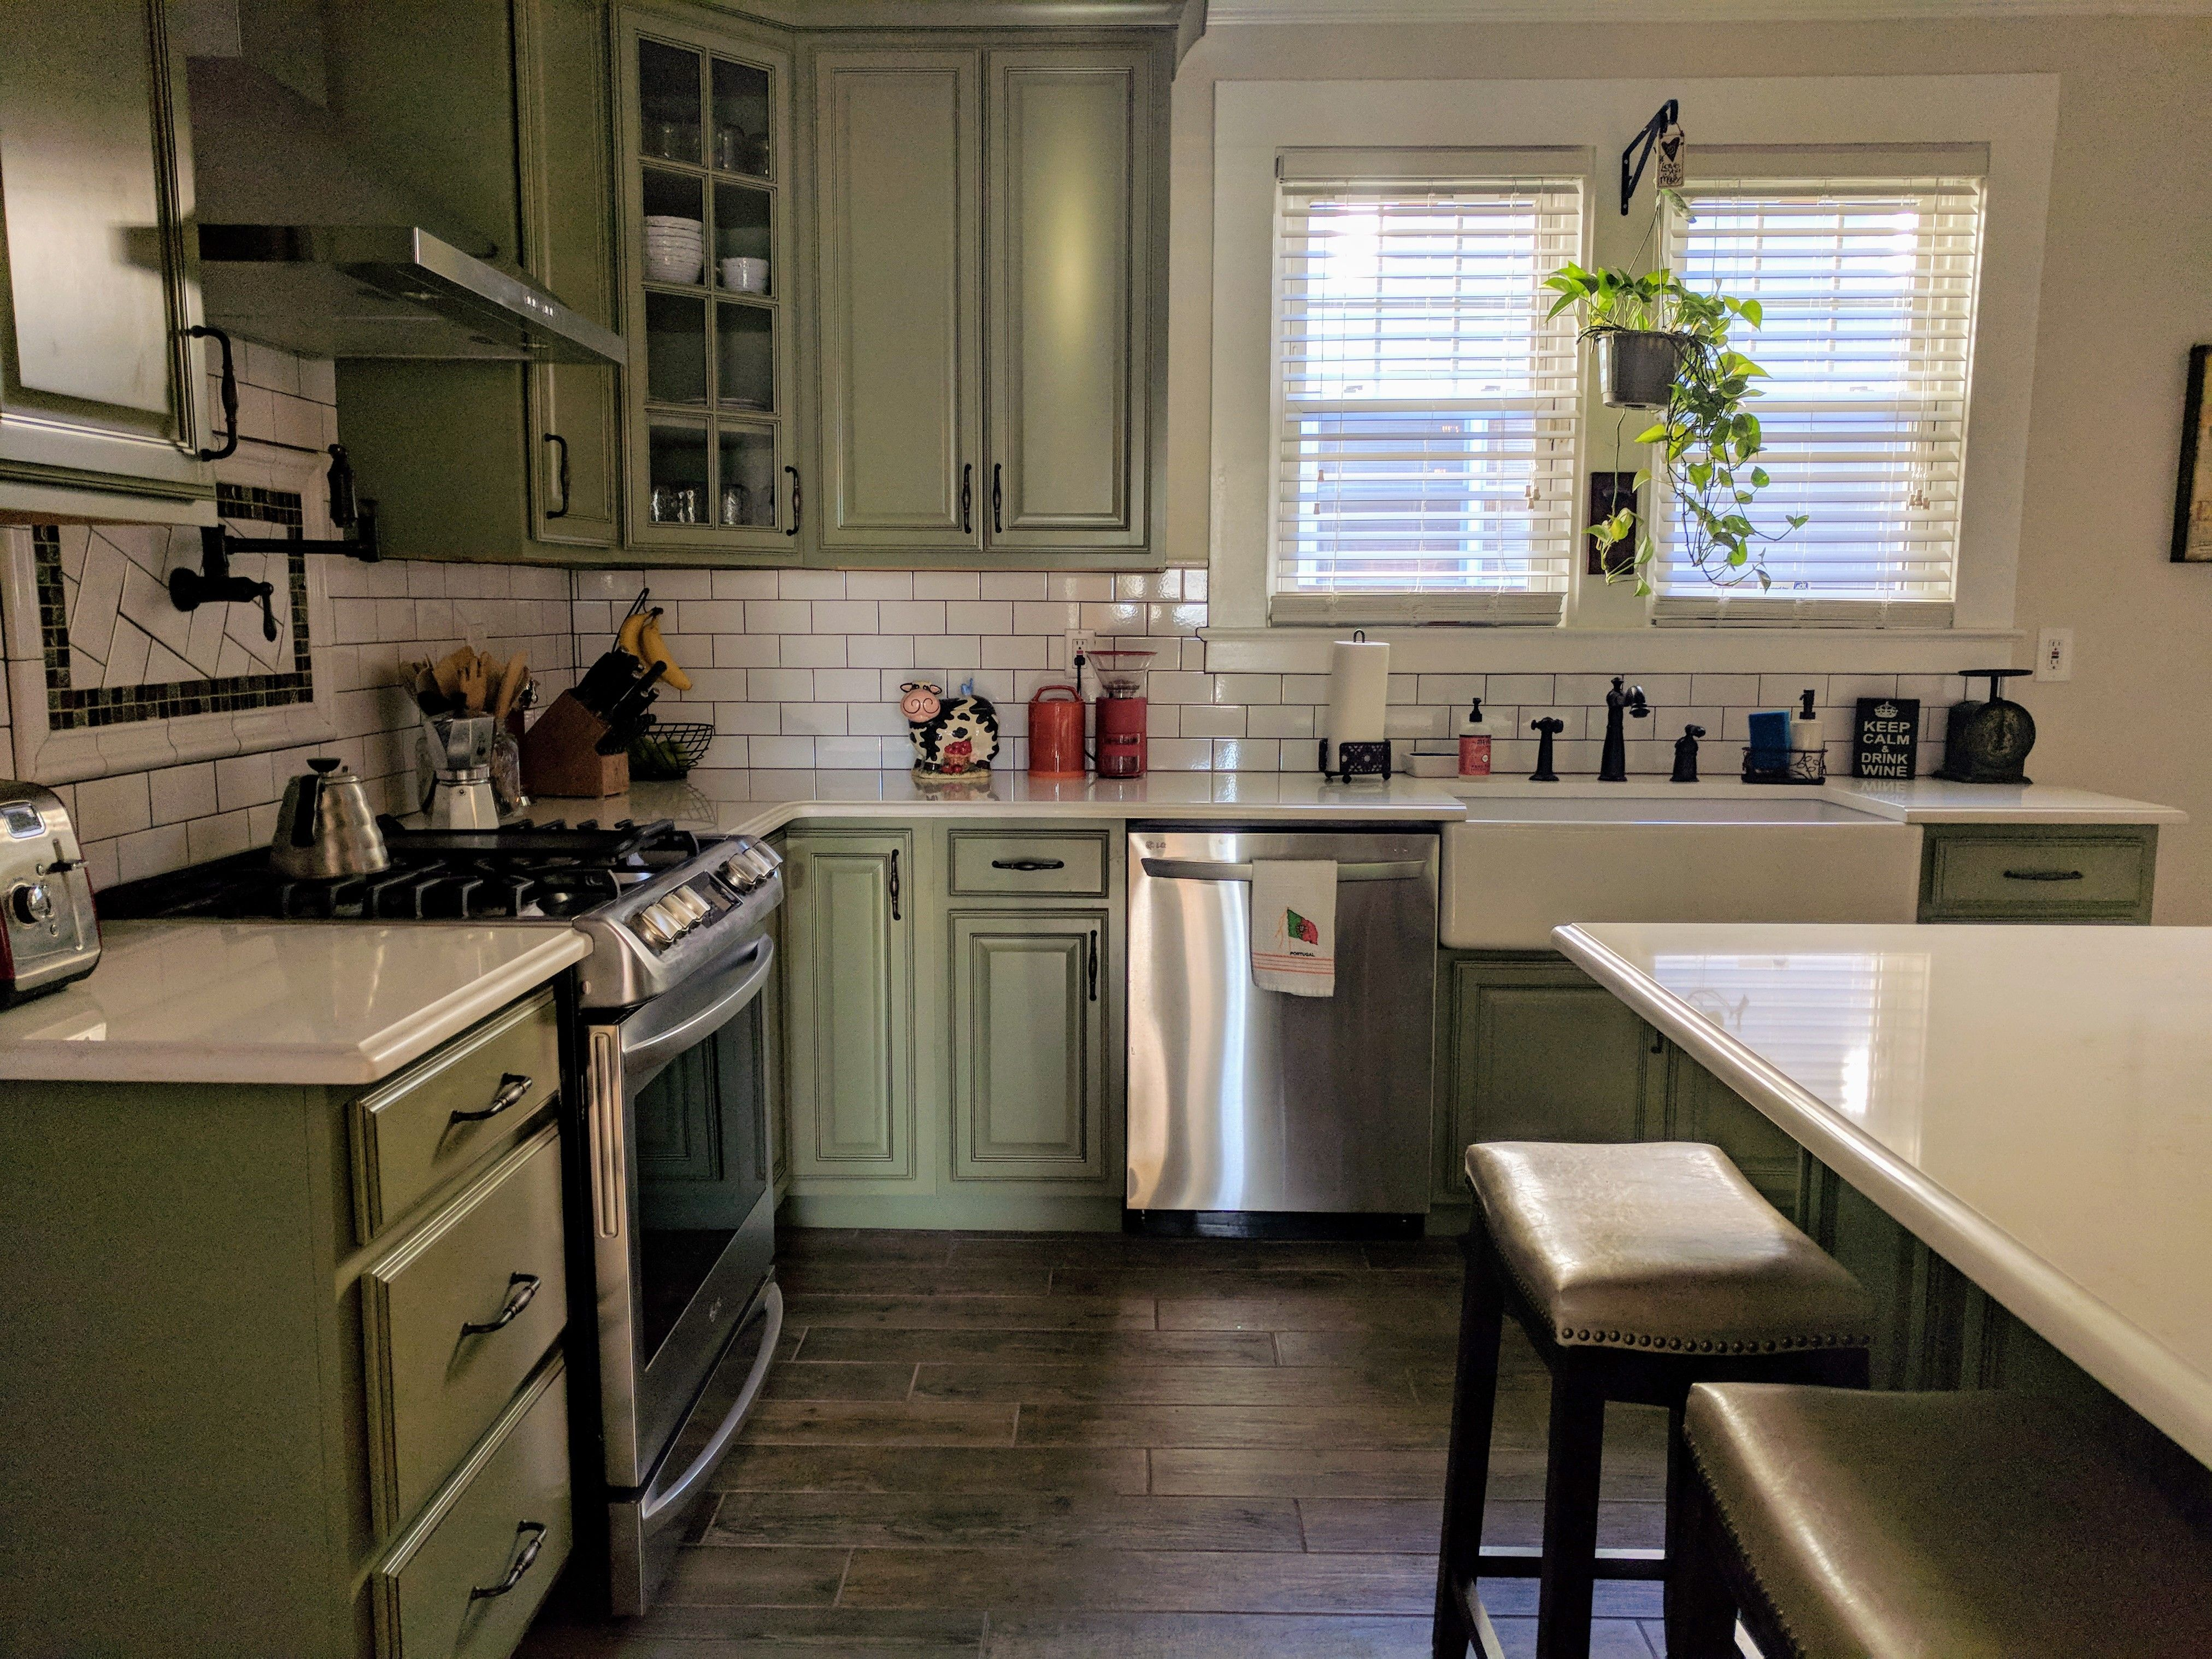 American Foursquare Kitchen Sage Green Cabinets White Subway Tile Dark Grout Wood Tile Floor Quartz Cou Kitchen Remodel Green Cabinets Green Kitchen Walls